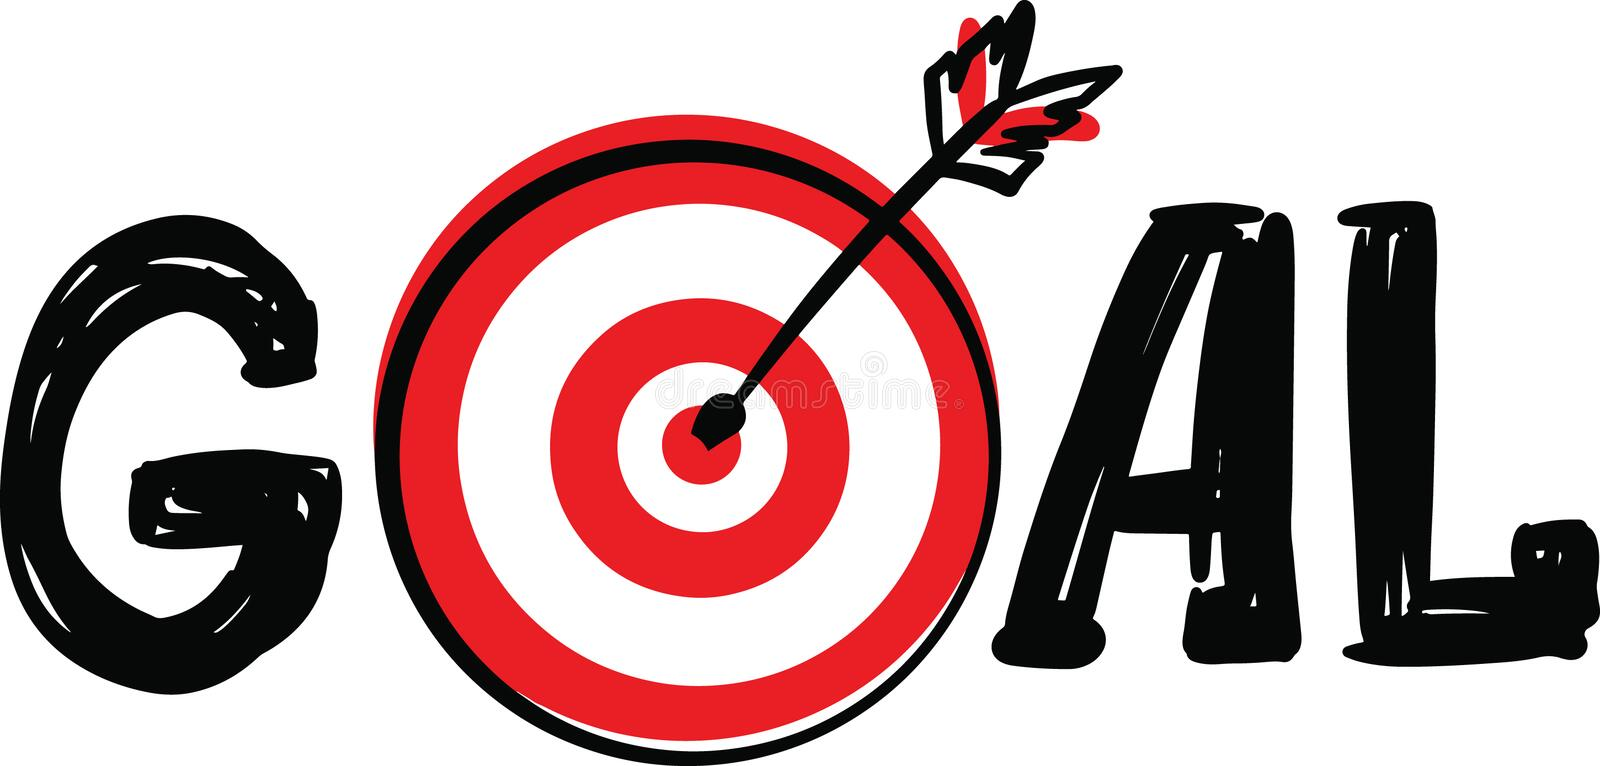 Doodle hand drawn Word Goal with Dartboard target and arrow symbol instead of letter O isolated on white background royalty free illustration